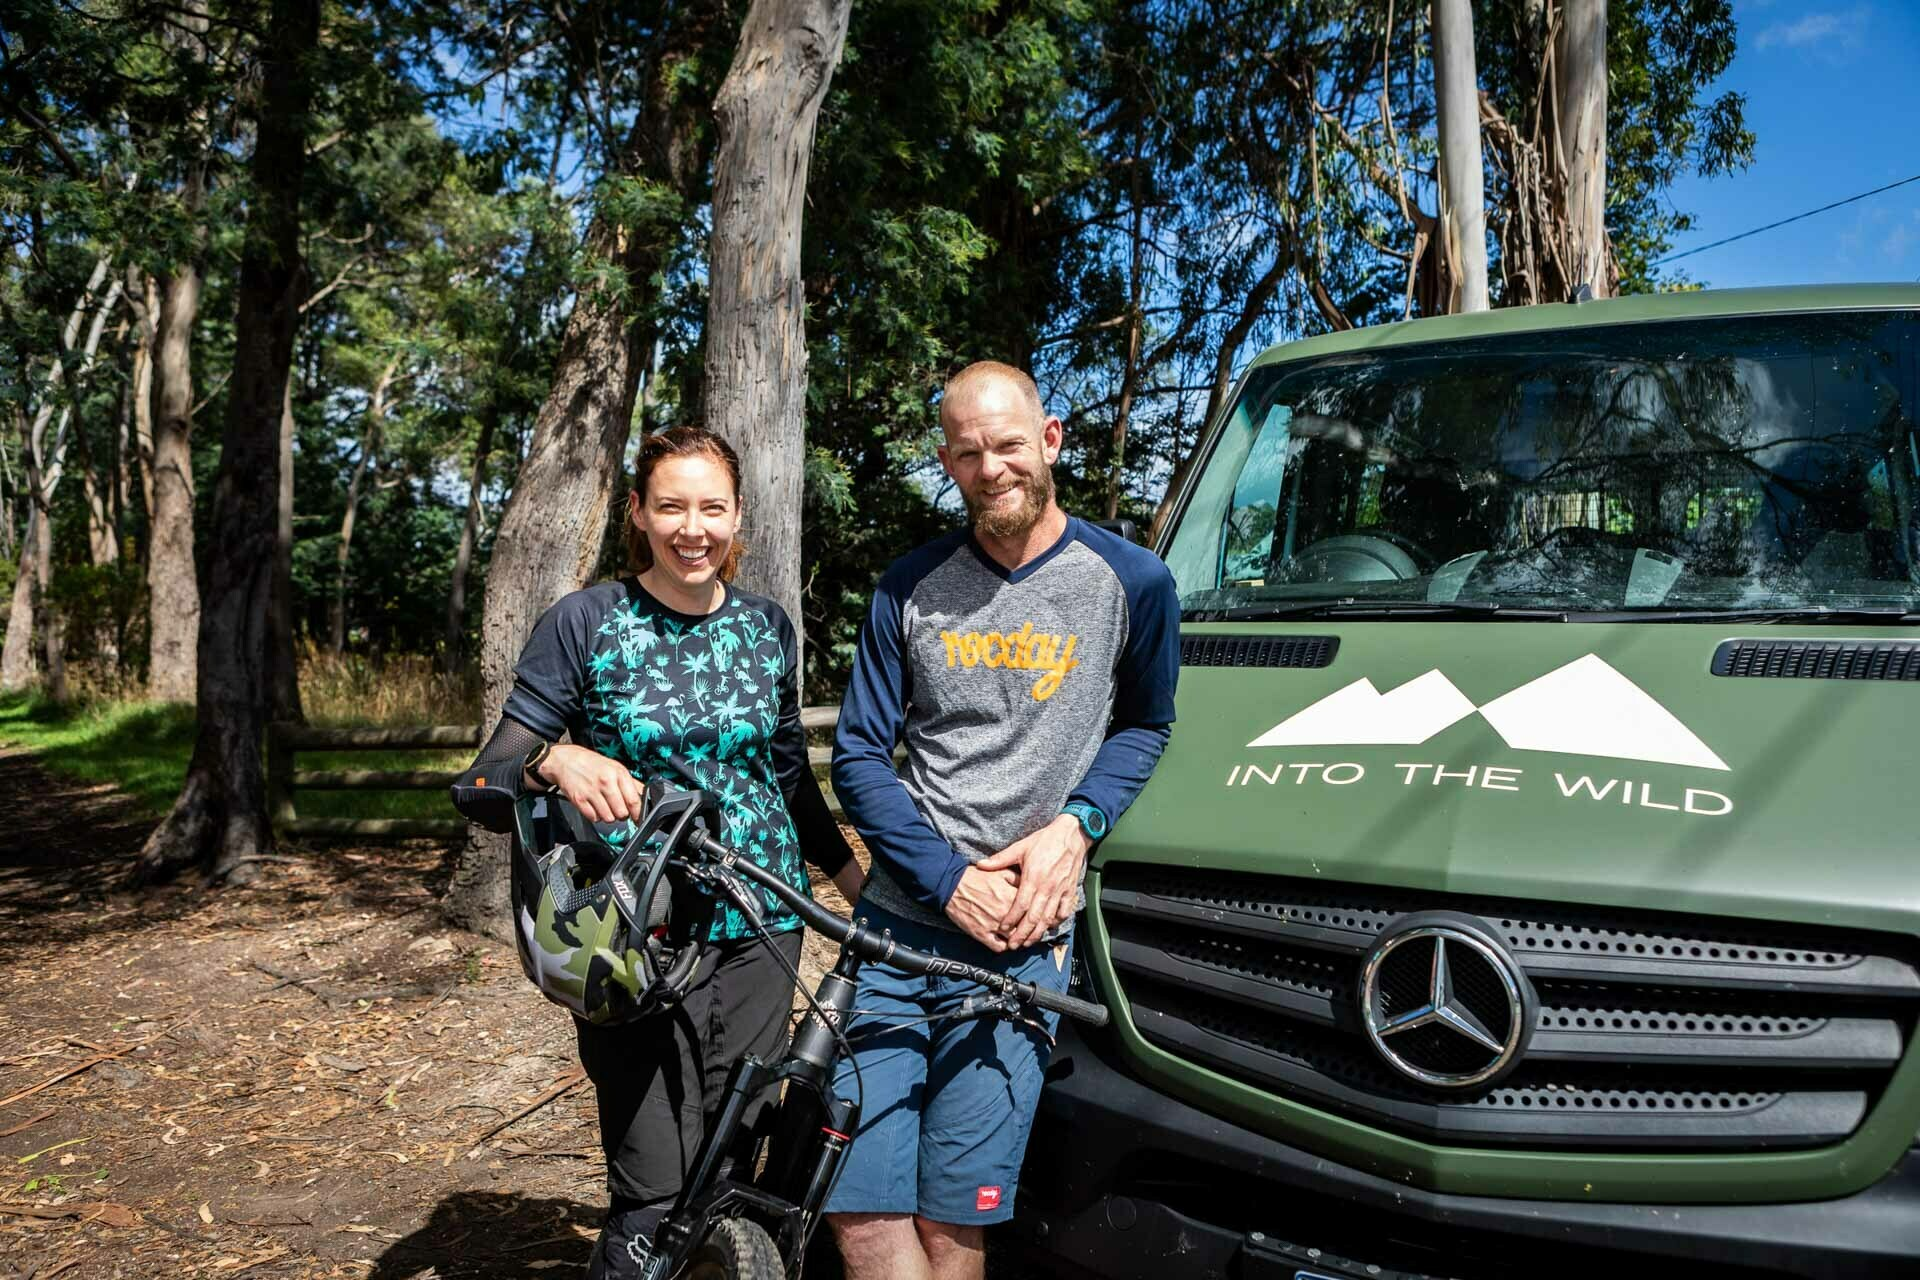 Dianne & Rohan Sheehan, Into The Wild. Photo Kelly Slater